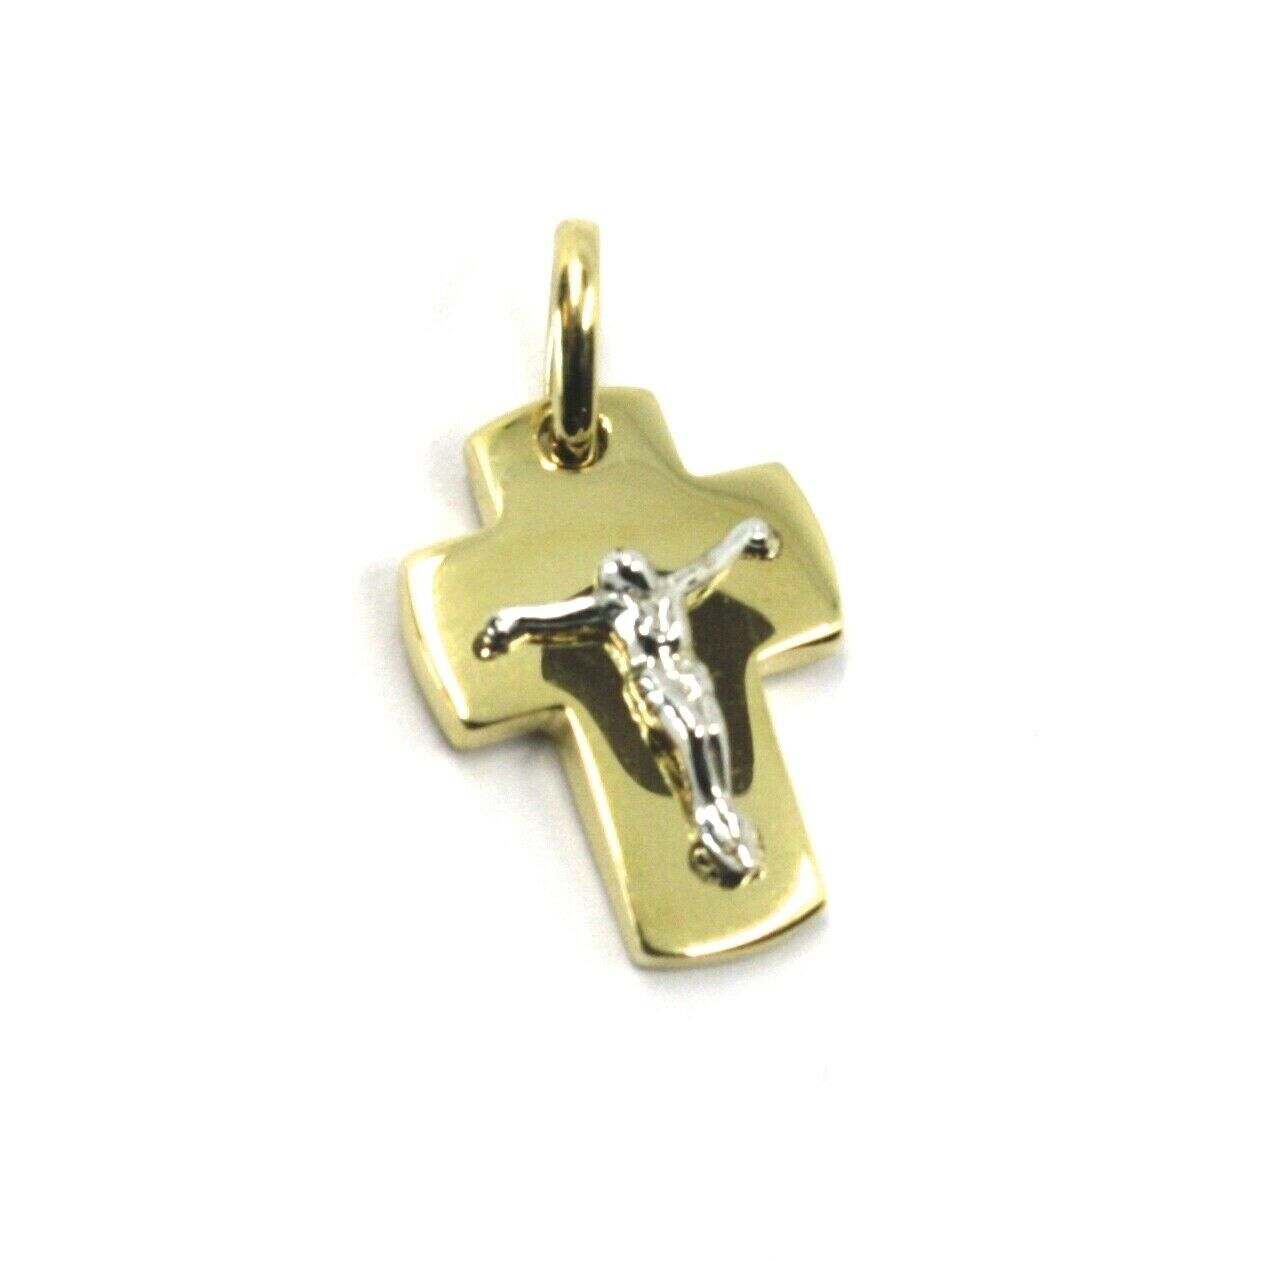 "SOLID 18K YELLOW WHITE GOLD ROUNDED JESUS CROSS PENDANT MINI 0.67"" MADE IN ITALY"